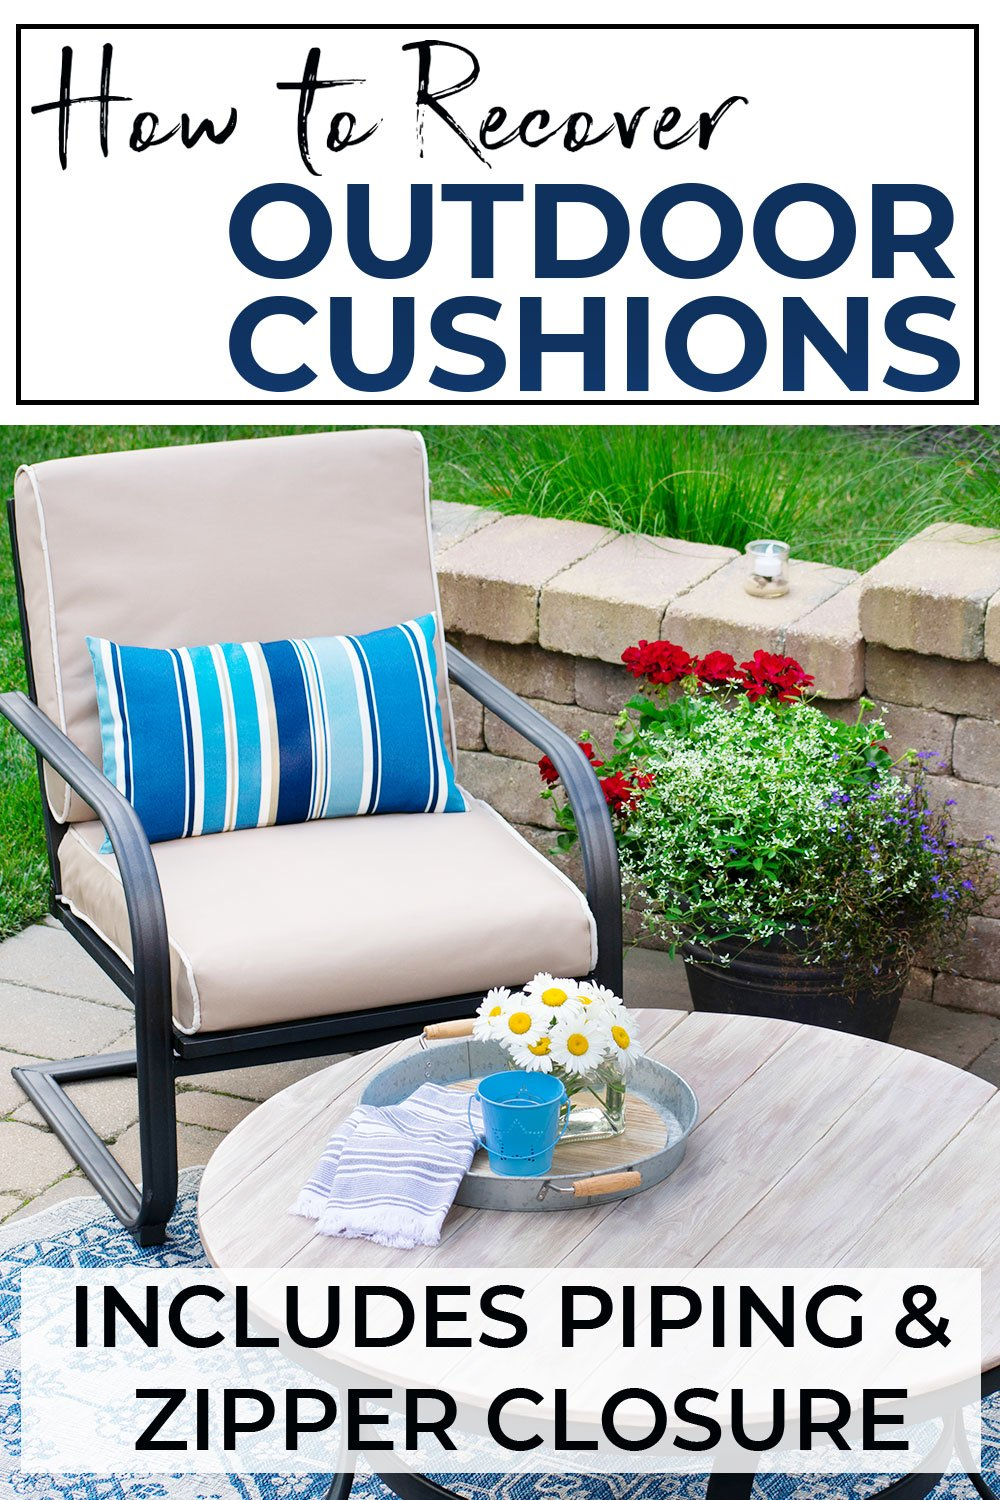 How To Recover Your Outdoor Cushions For Your Deck Or Patio Furniture